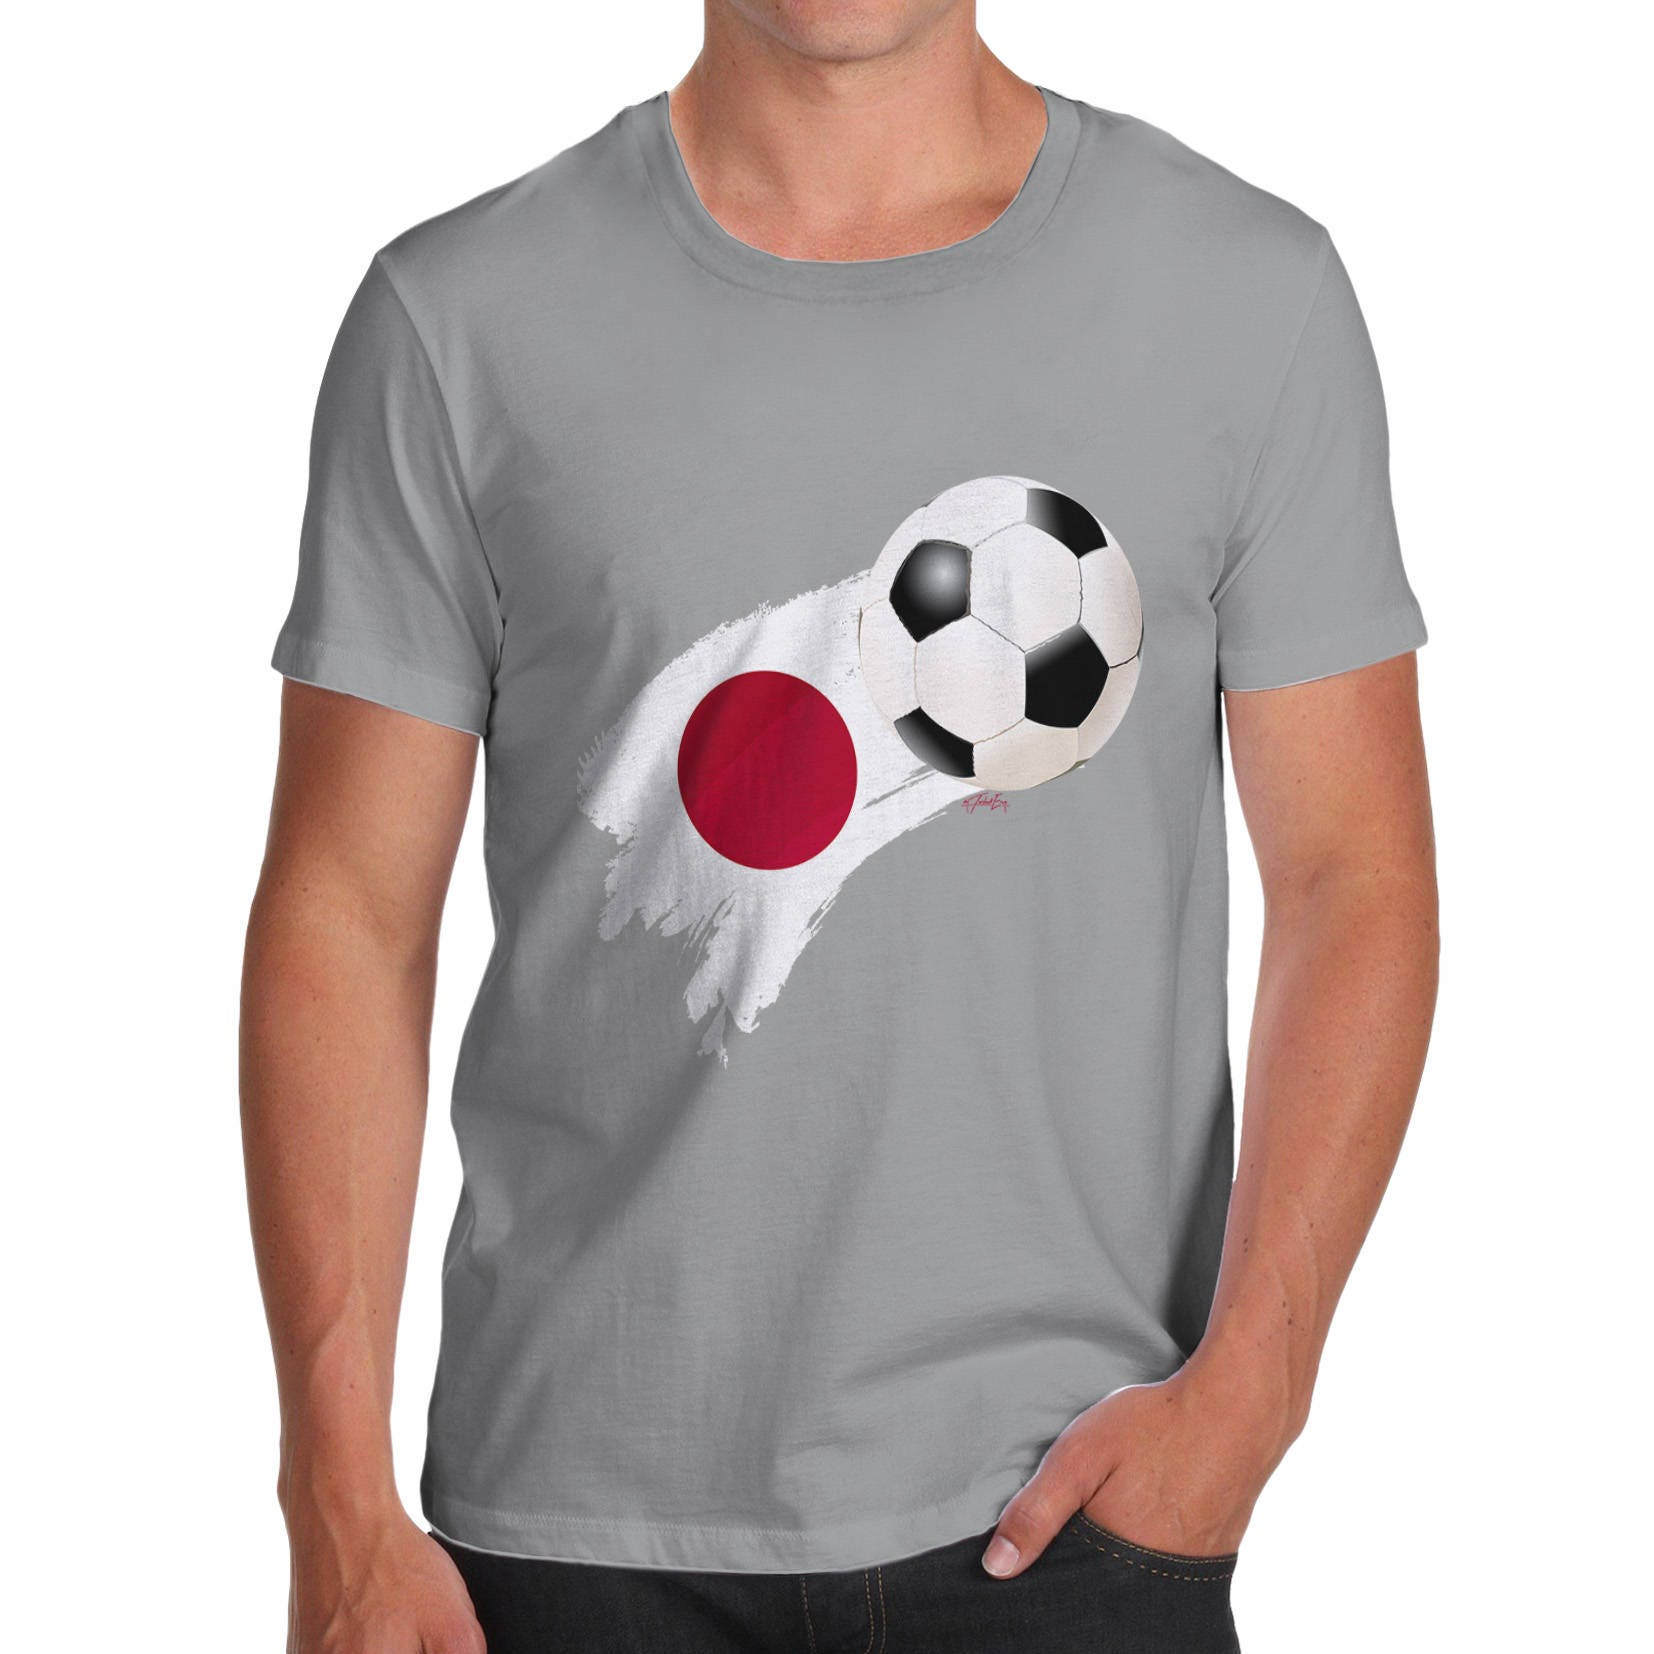 Japan Football Flag Paint Splat Mens Funny  100 Cotton TShirt Crew Neck Comfortable and Soft Classic Tee with Unique Design